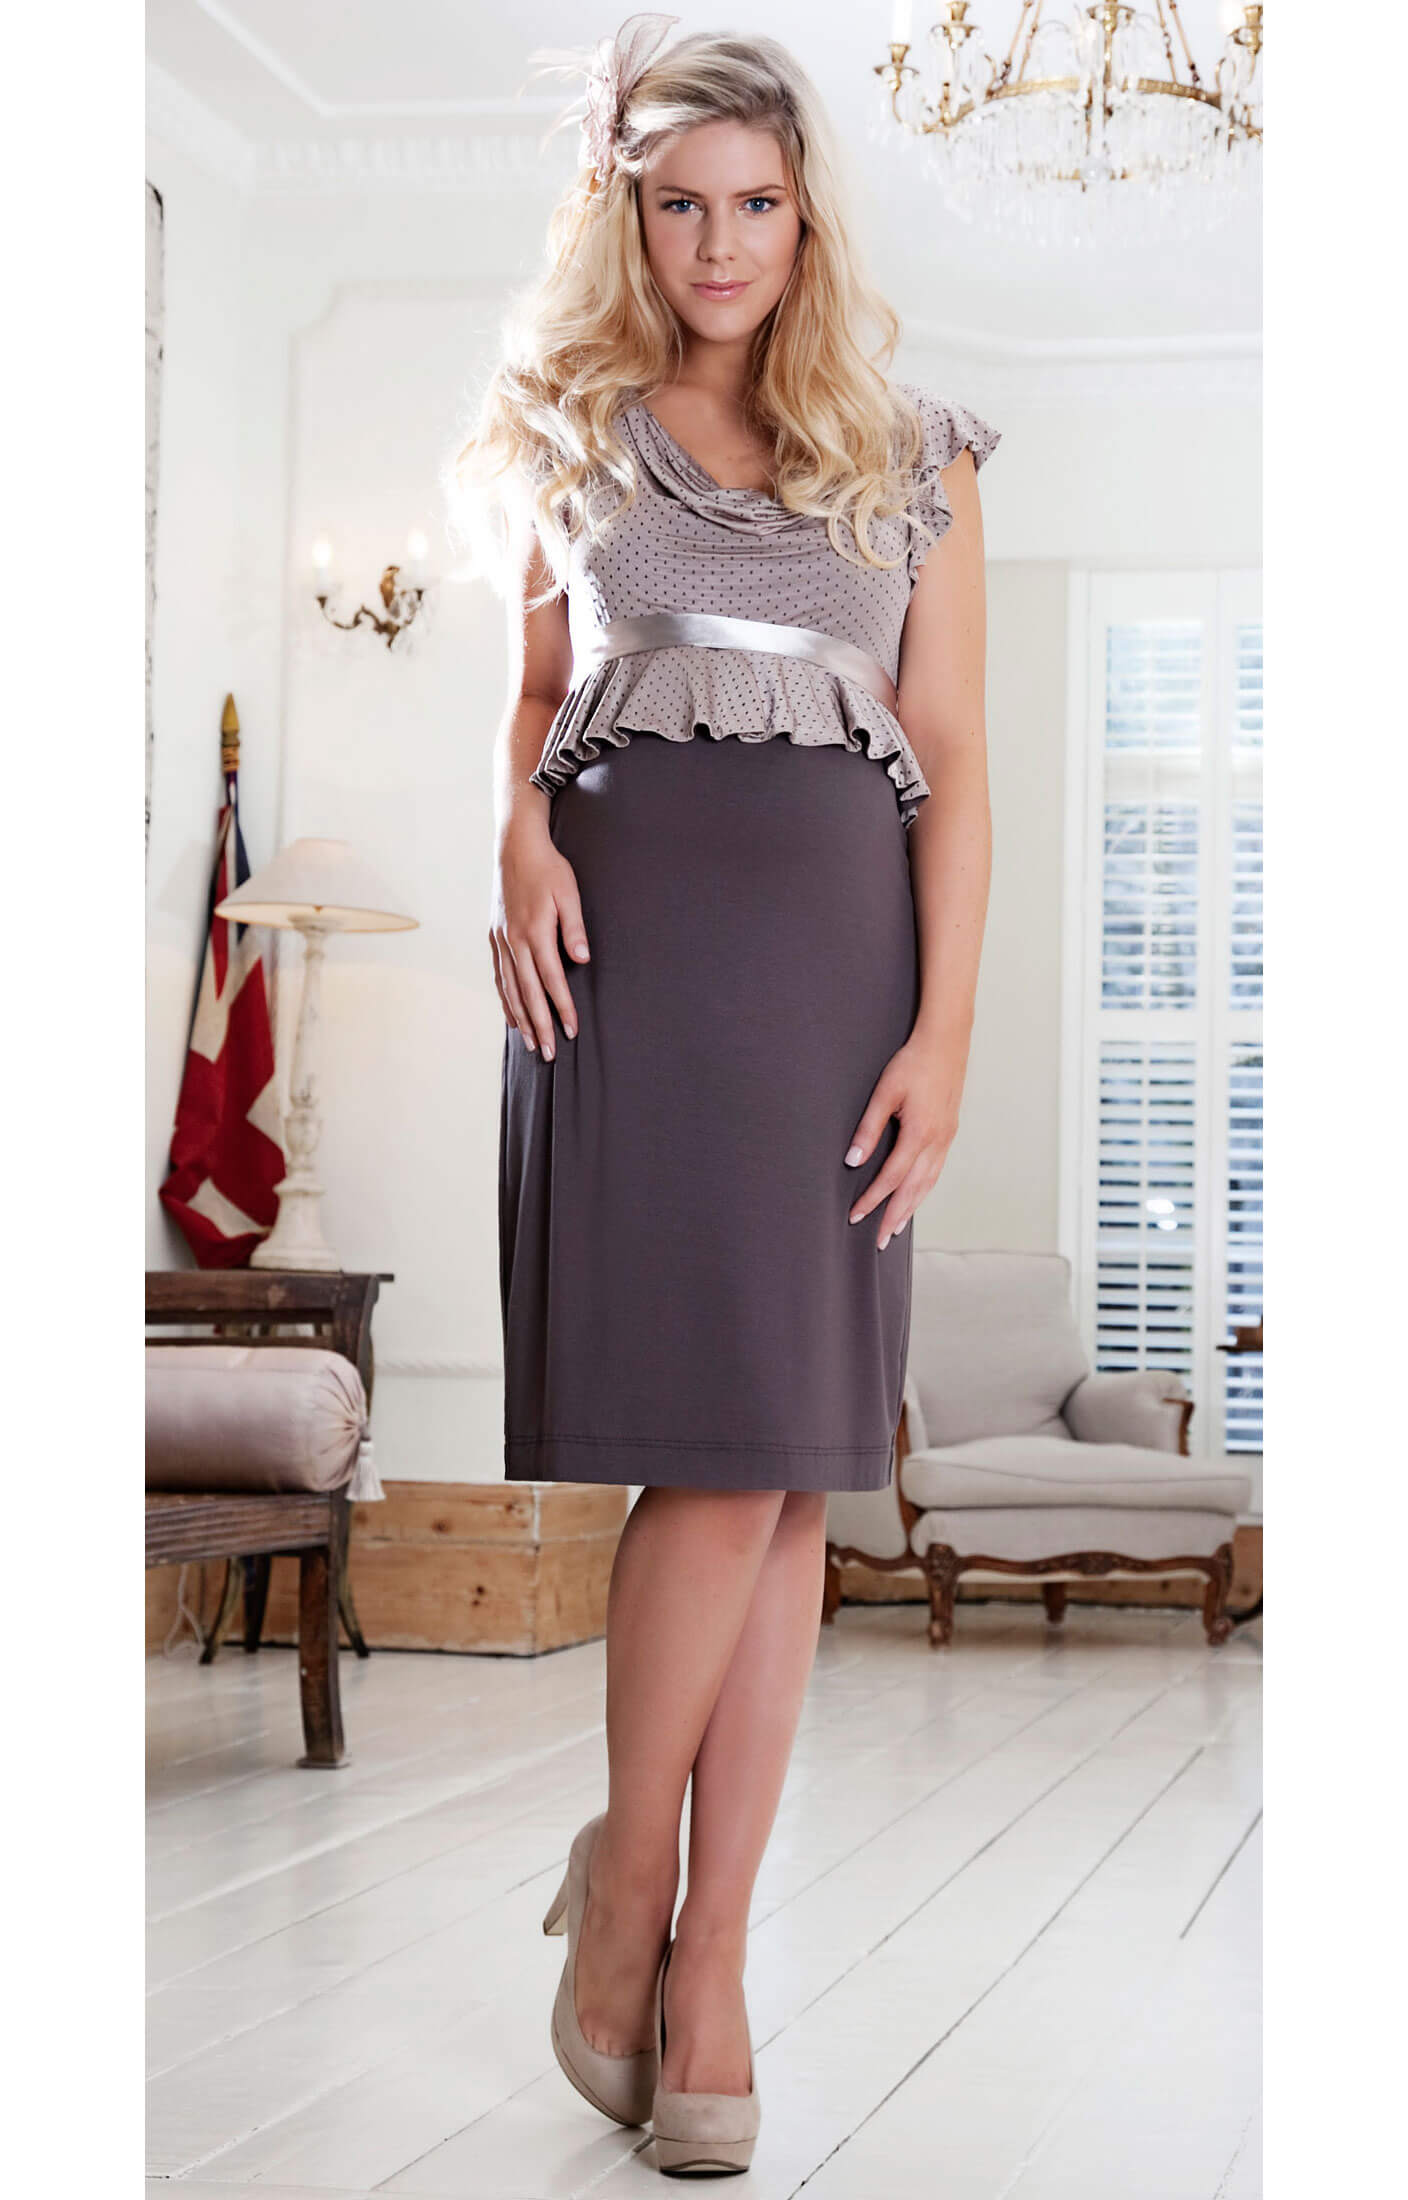 Flounce tea maternity dress maternity wedding dresses evening flounce tea maternity dress by tiffany rose ombrellifo Gallery